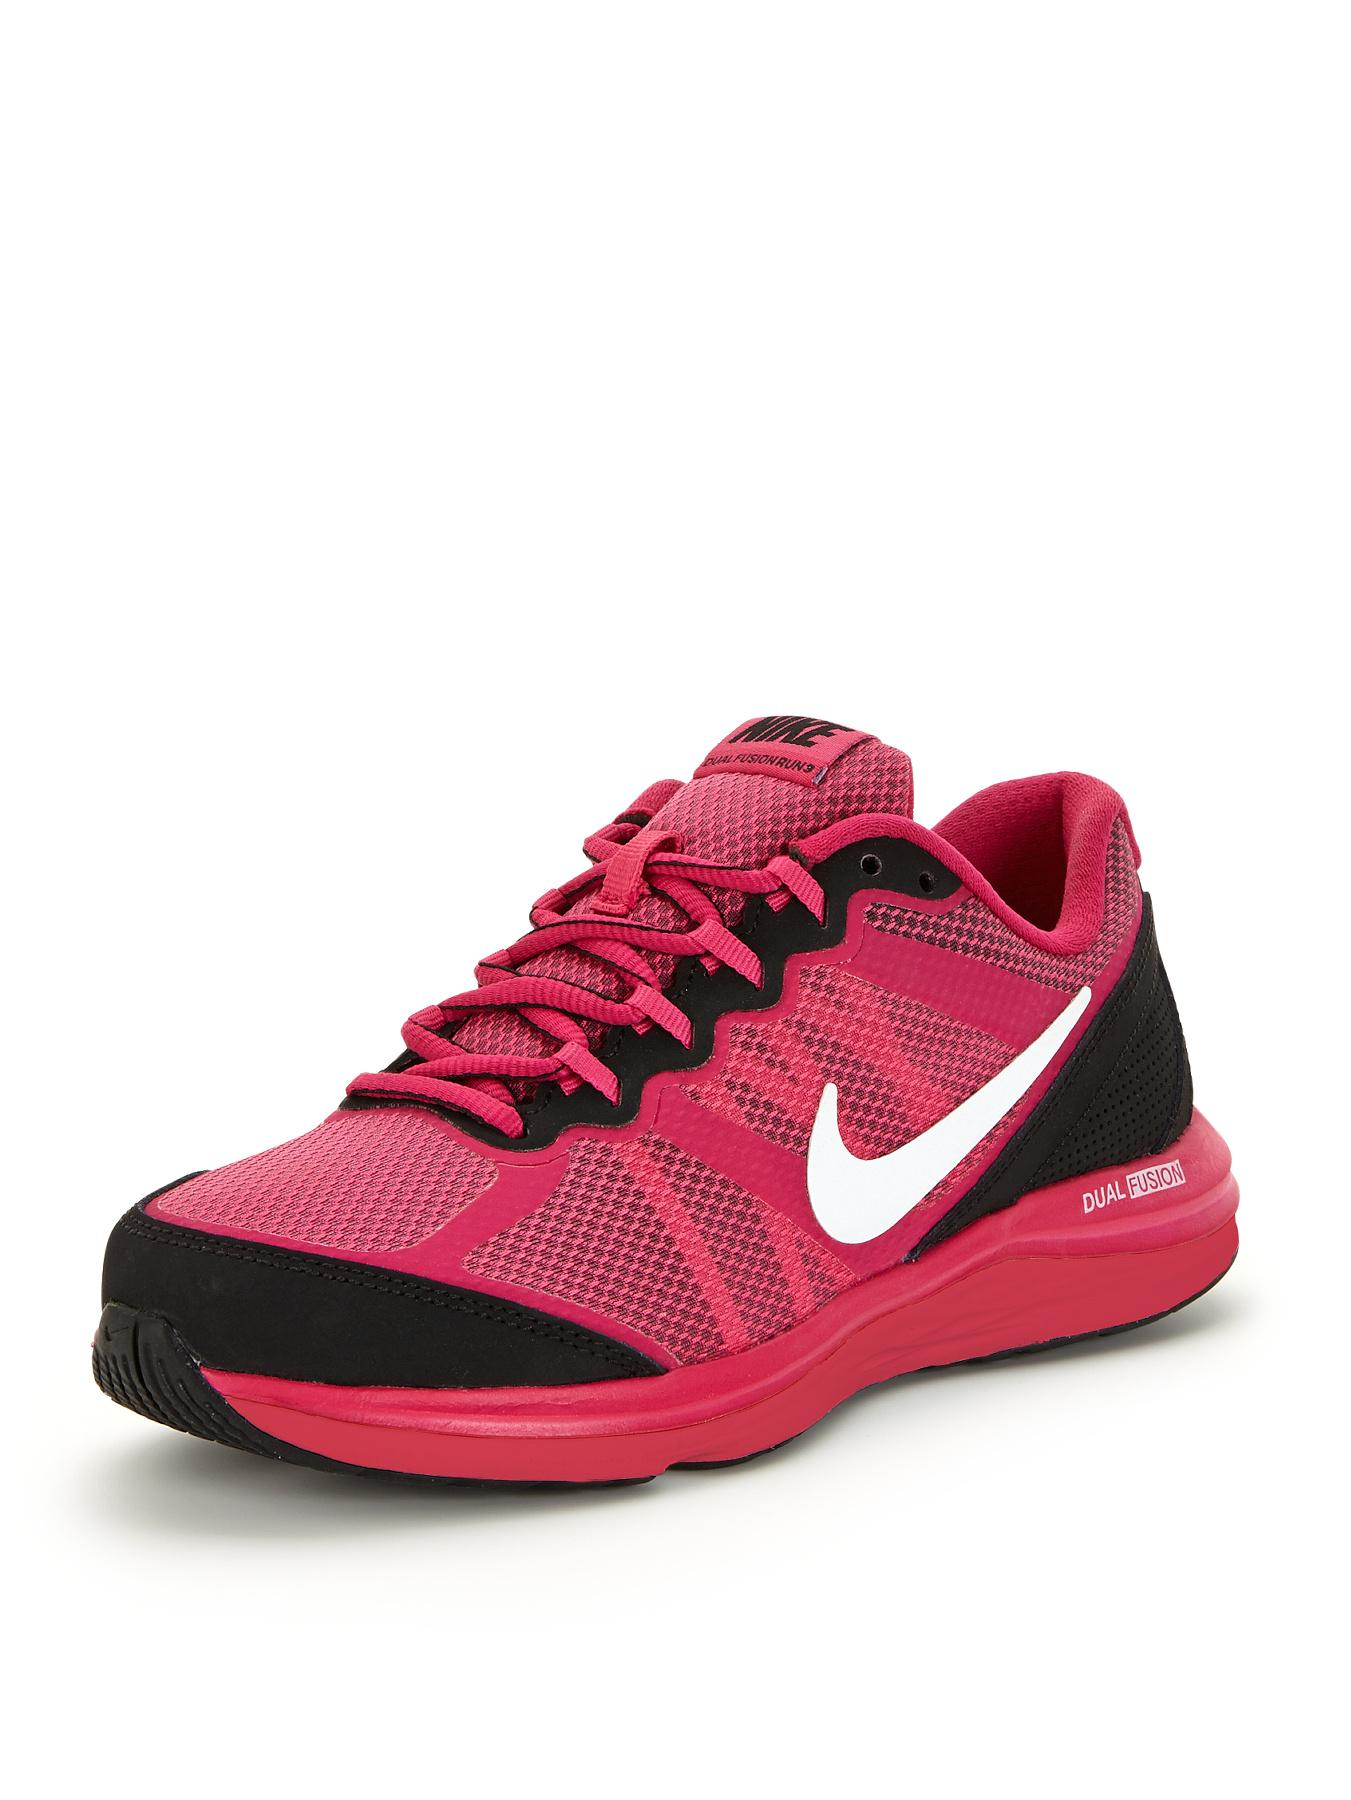 Nike Kids Fusion Run 3 Junior Trainers - Pink, Pink